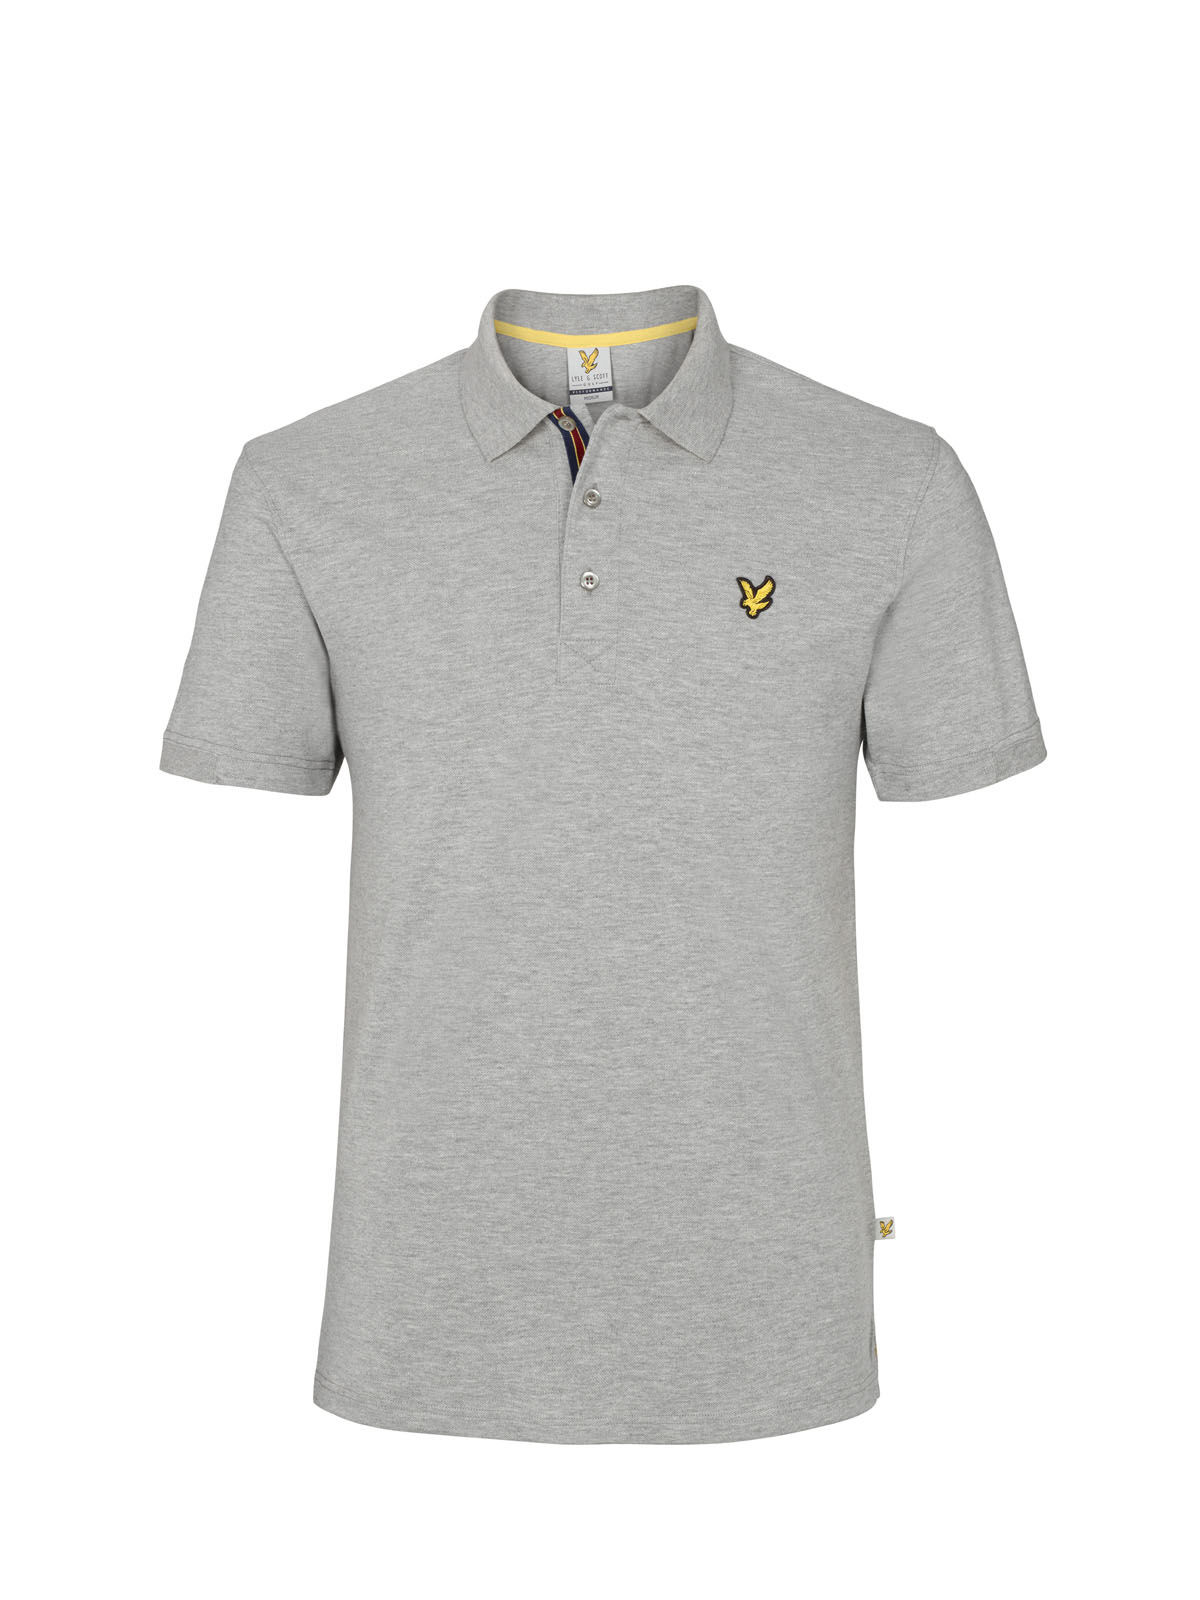 Lyle and Scott Light Grey Marl Kelso Golf Polo Shirt